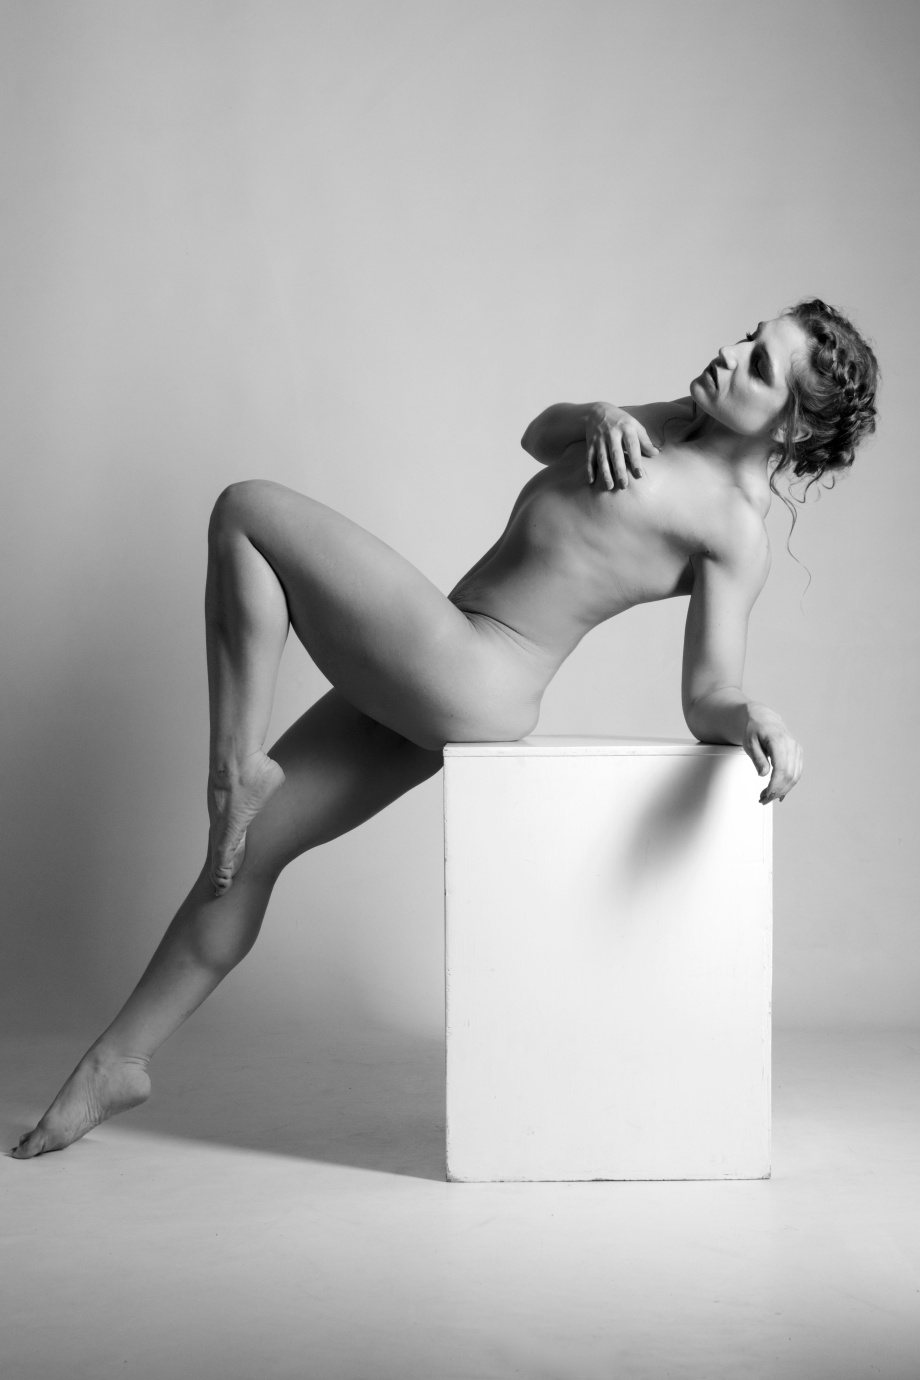 Kimm Gonçalves, model, Cork, Ireland, glamour, nude, studio, black and white, implied